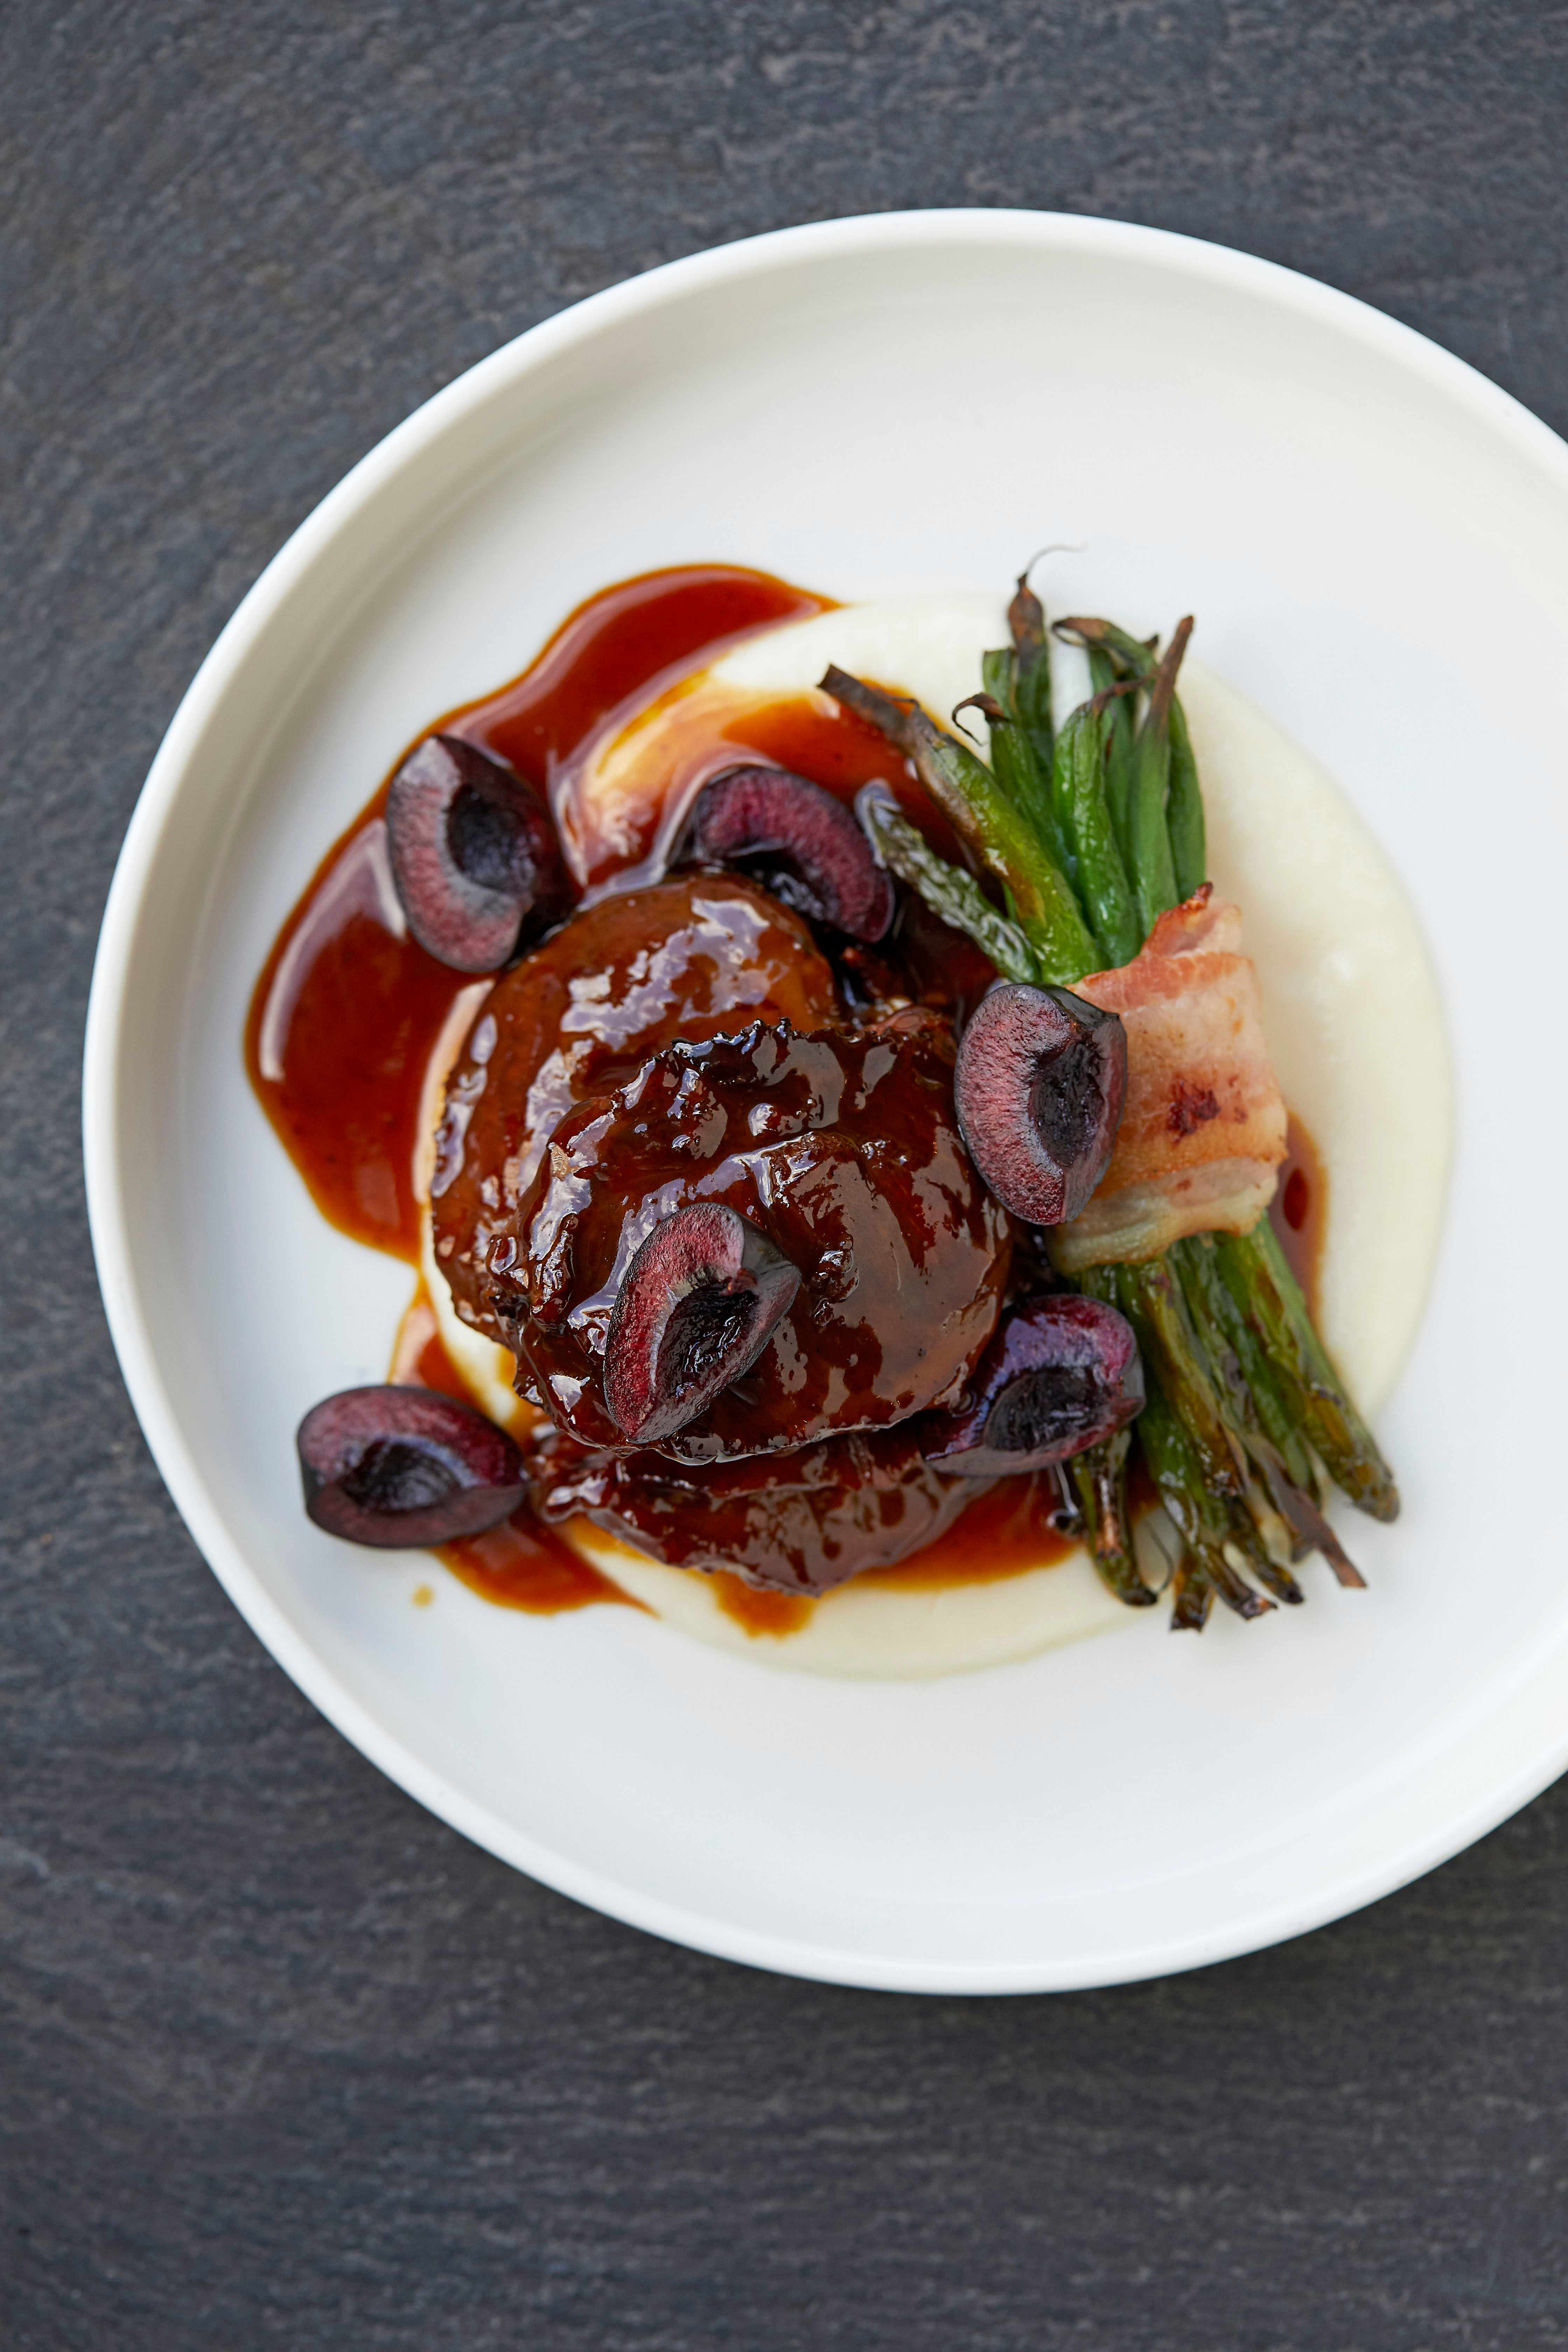 Pig Cheeks Recipe with Pickled Cherries and Turnip Purée